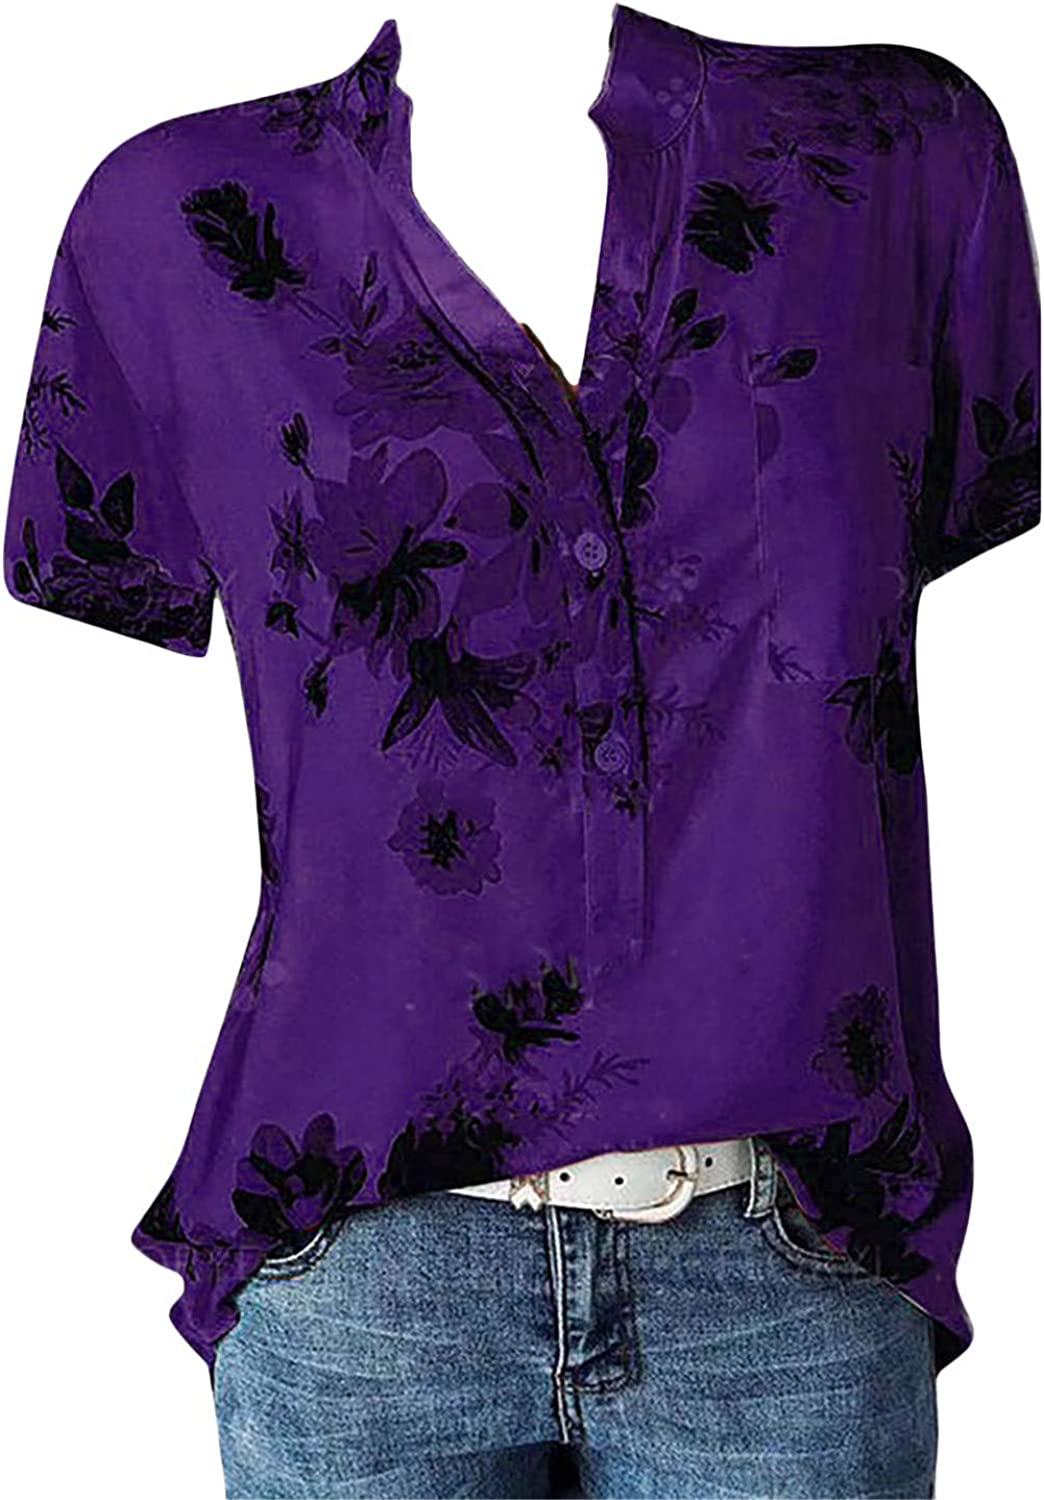 Andongnywell Womens Loose Blouse Short Sleeve V Neck Button Down T Shirts Casual Tops